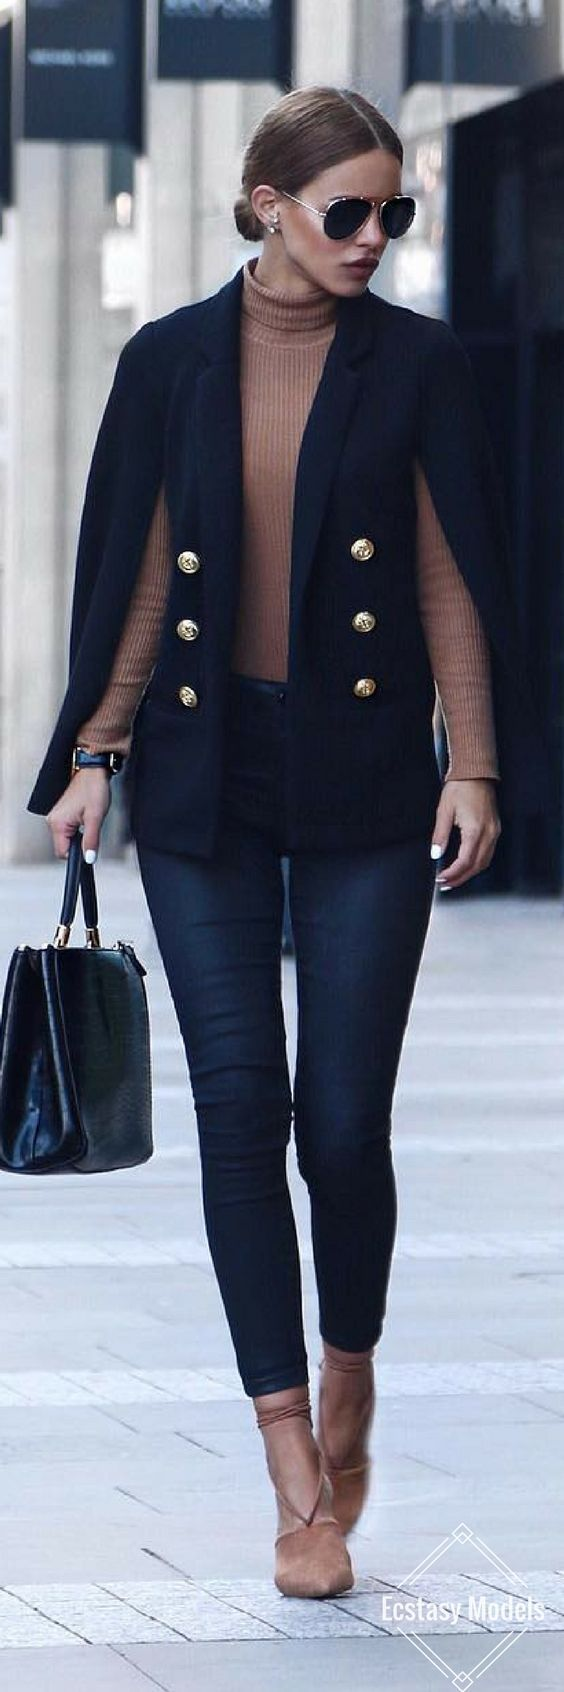 How to wear a cape outfit this fall -15 looks you can copy